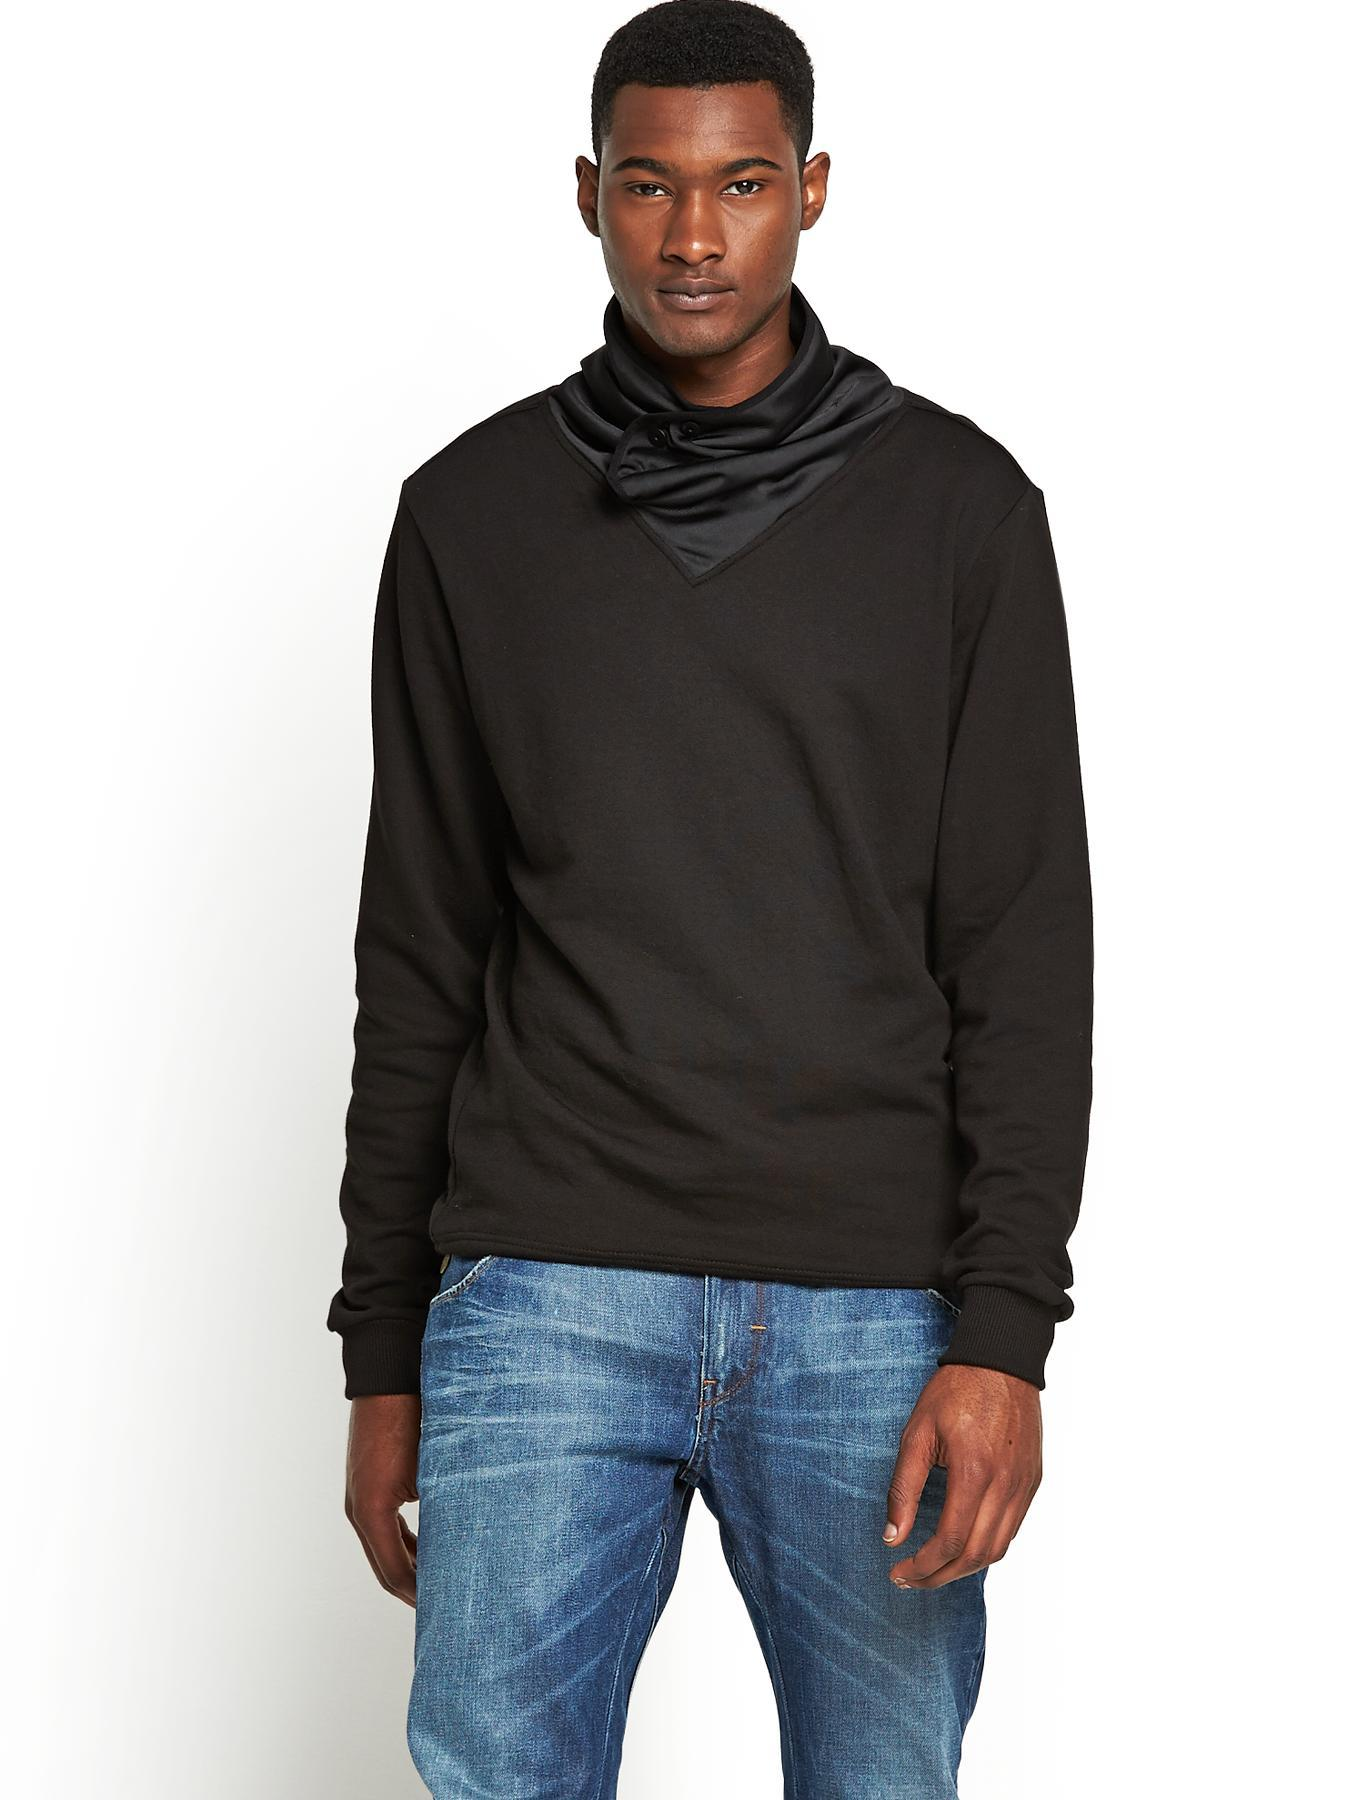 Sobeck Mens Sweat Top, Black